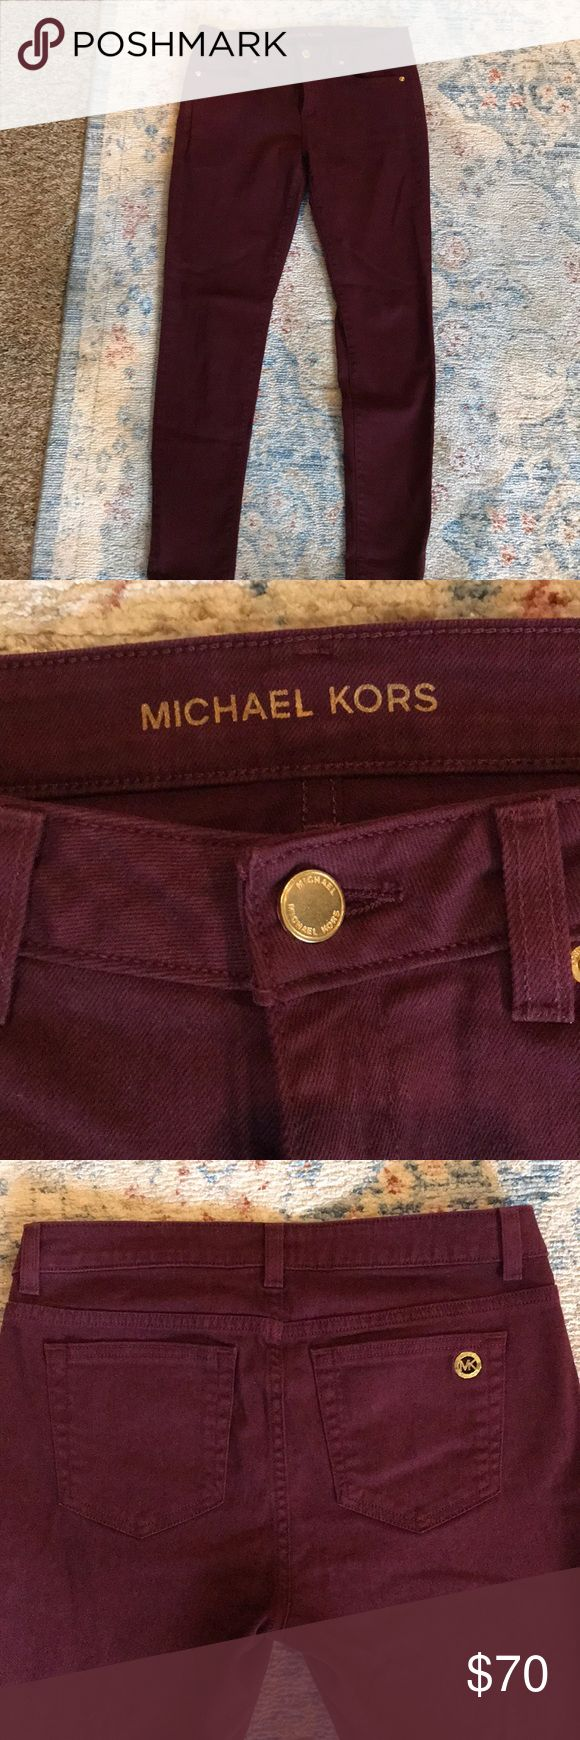 Michael Kors maroon skinny jeans Maroon jeans in excellent condition..Size 2. Worn and washed once! Michael Kors Jeans Skinny